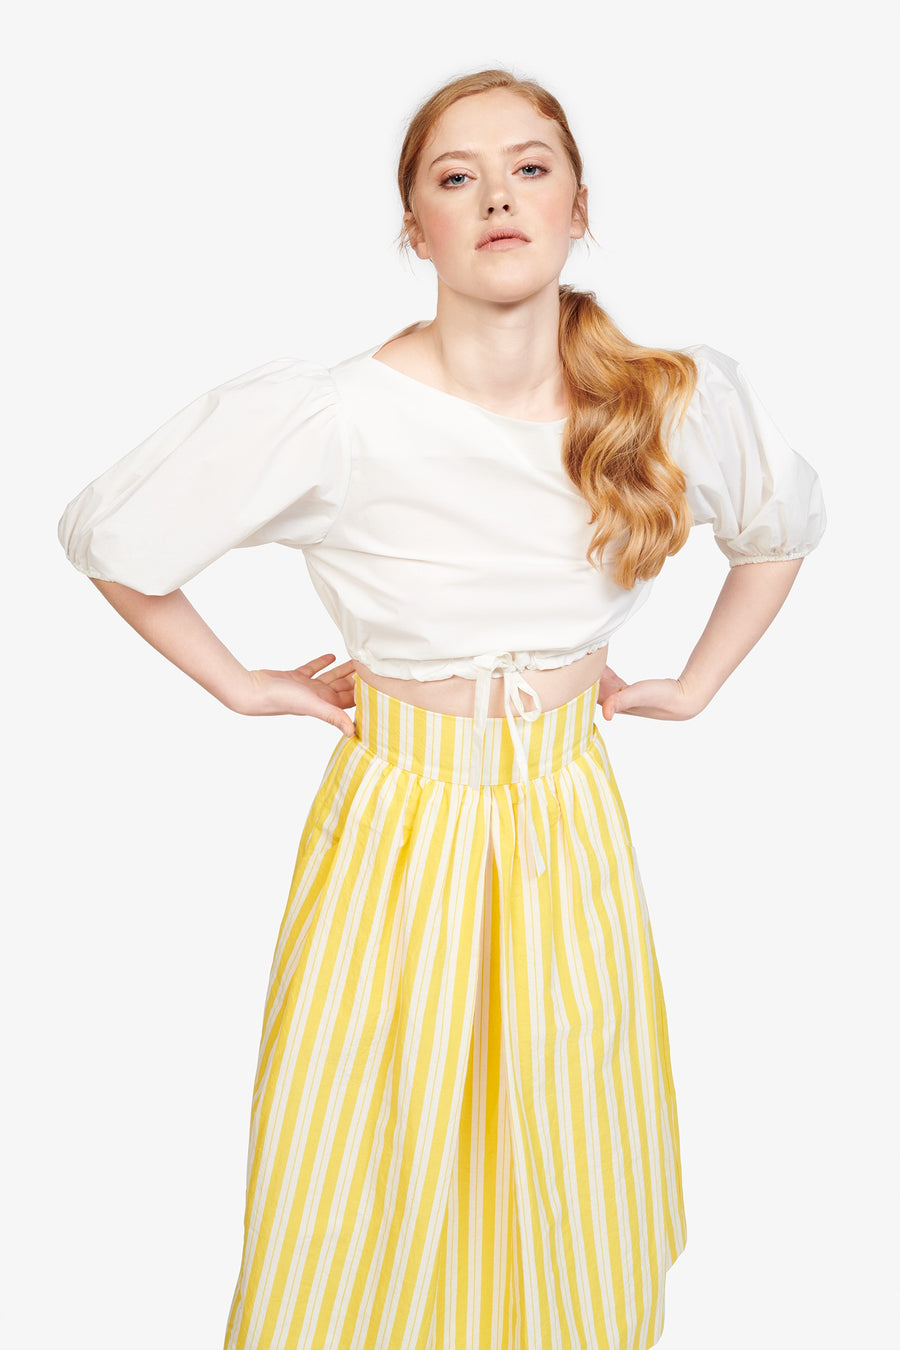 Kimani Skirt in Yellow Otto Stripe